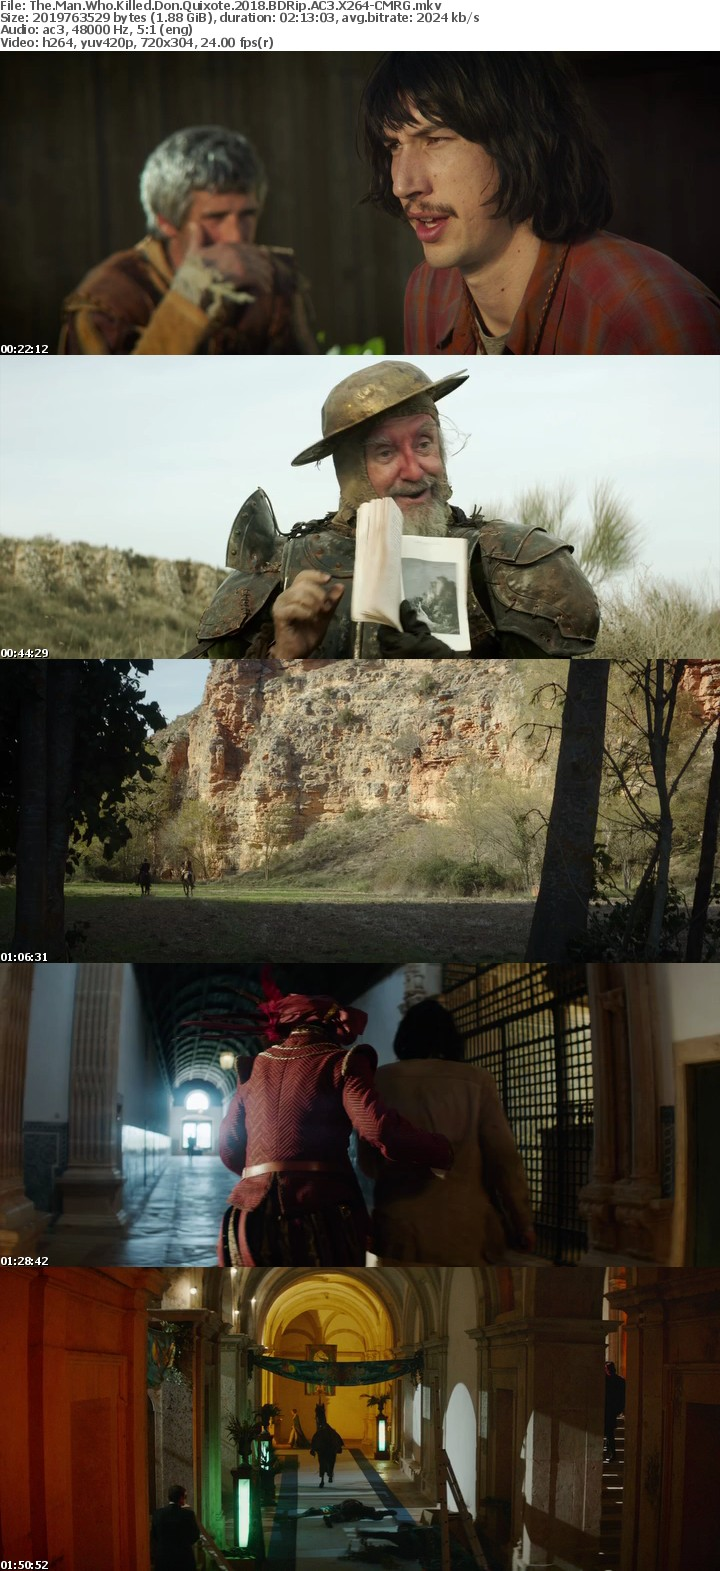 The Man Who Killed Don Quixote 2018 BDRip AC3 X264-CMRG